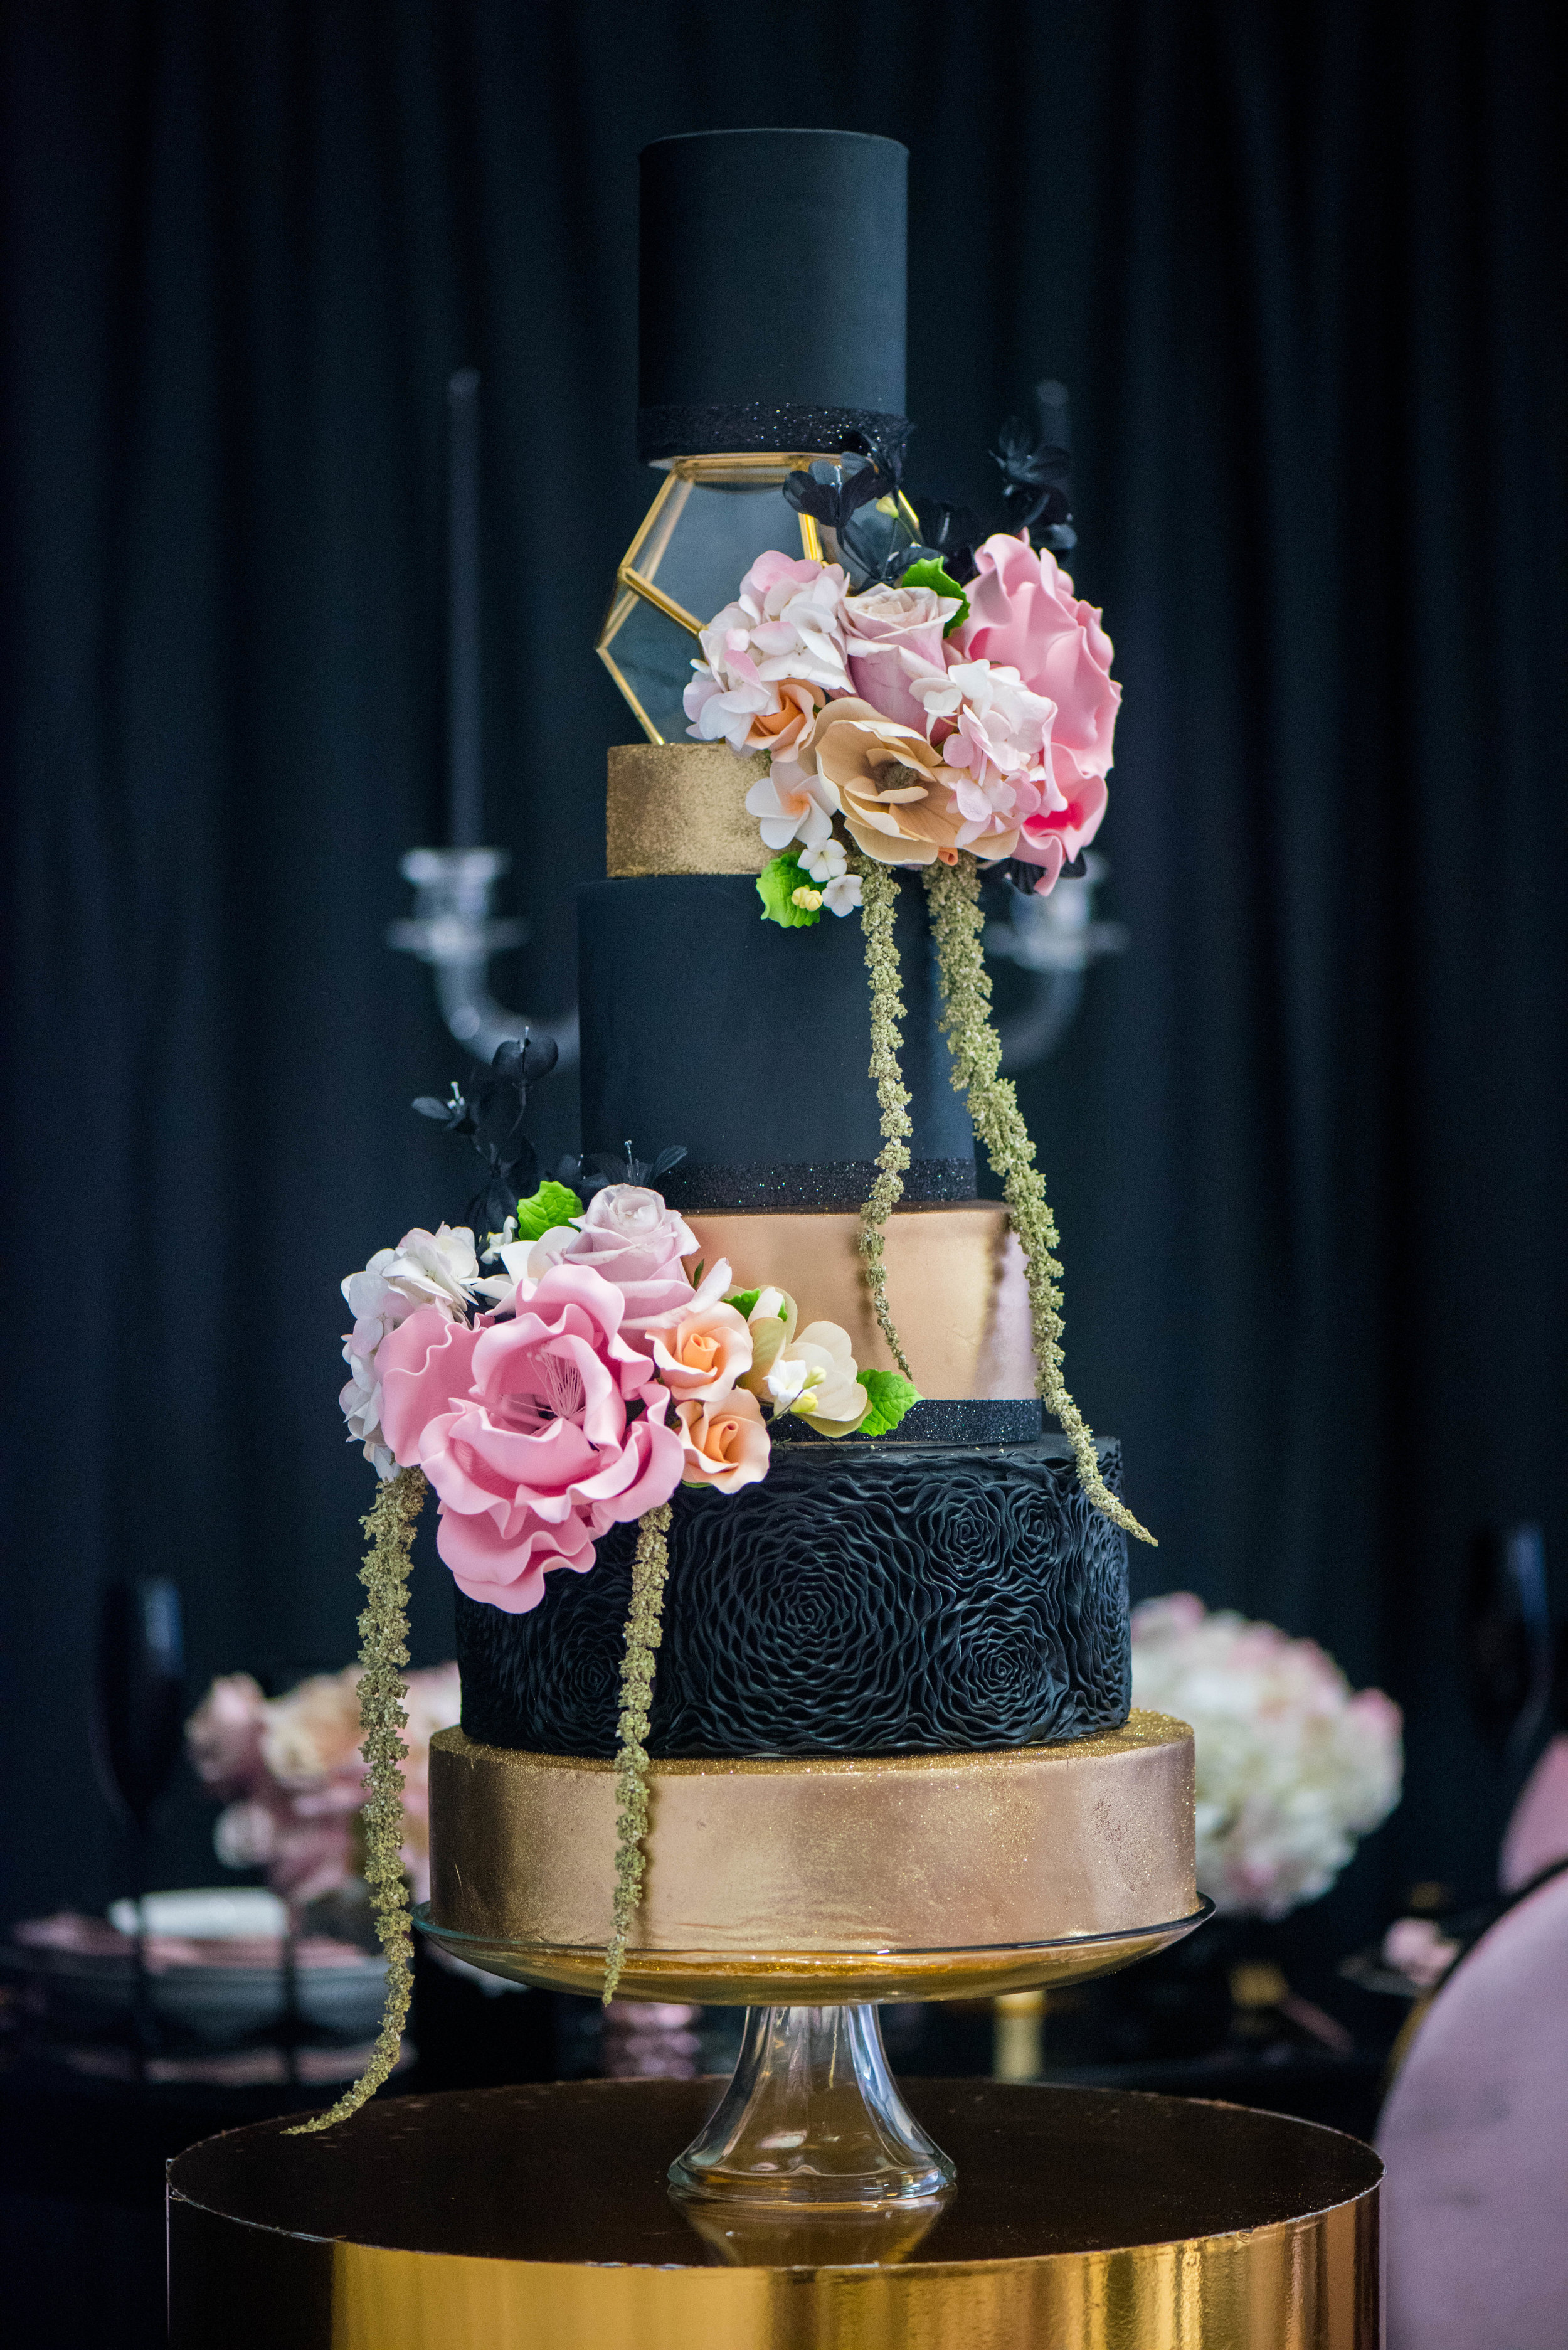 Black and Blush - A stunning wedding cake for a glamorous affair!